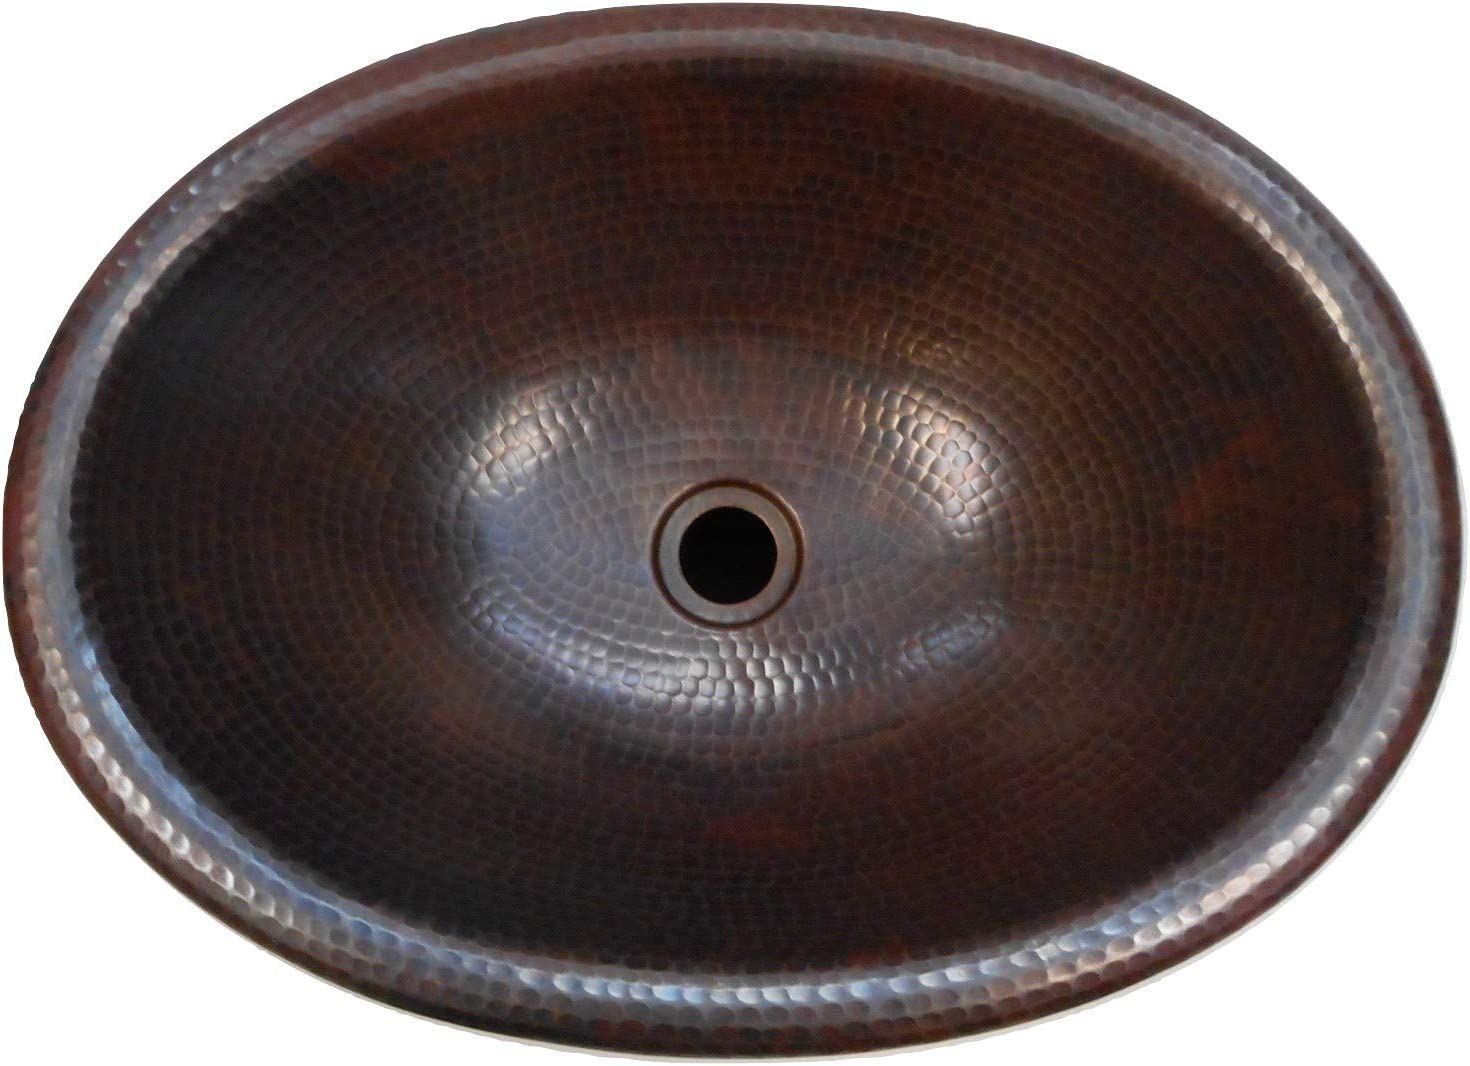 19 x 14 Oval Copper Bath Sink Self Rimming Drop-In or Vessel Sink by SimplyCopper